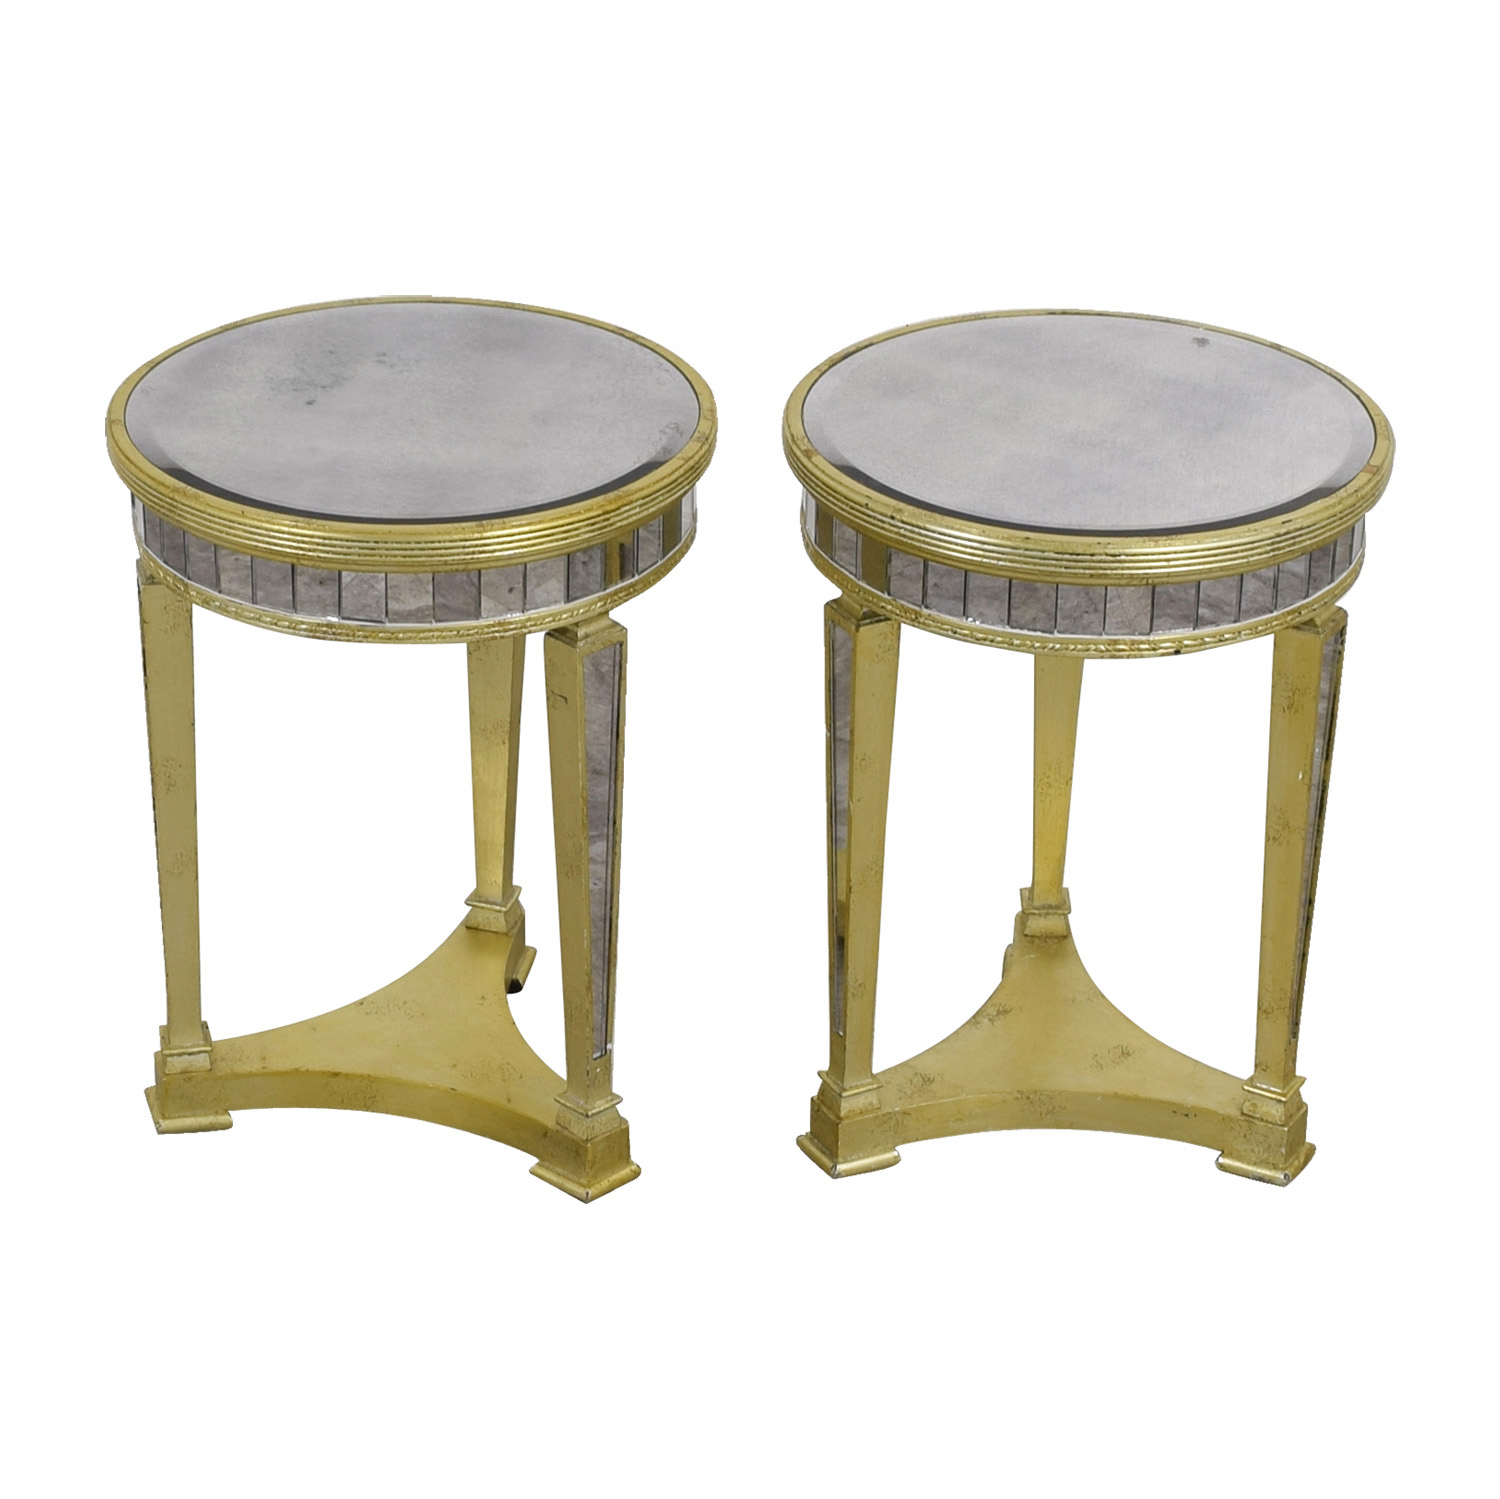 Z Galleries Z Galleries Borghese Mirrored Side Tables on sale